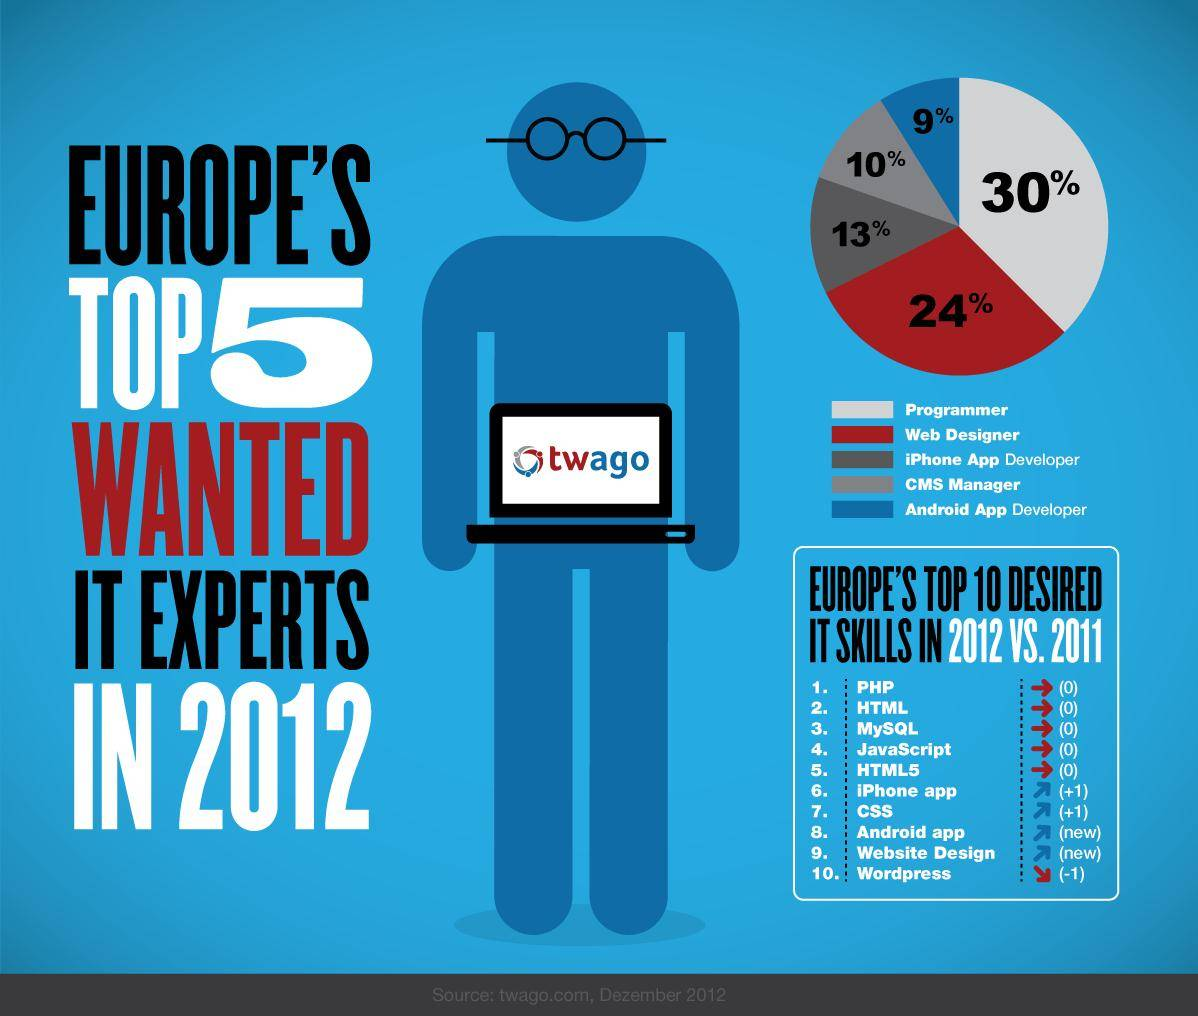 European freelancer trends for the year 2012